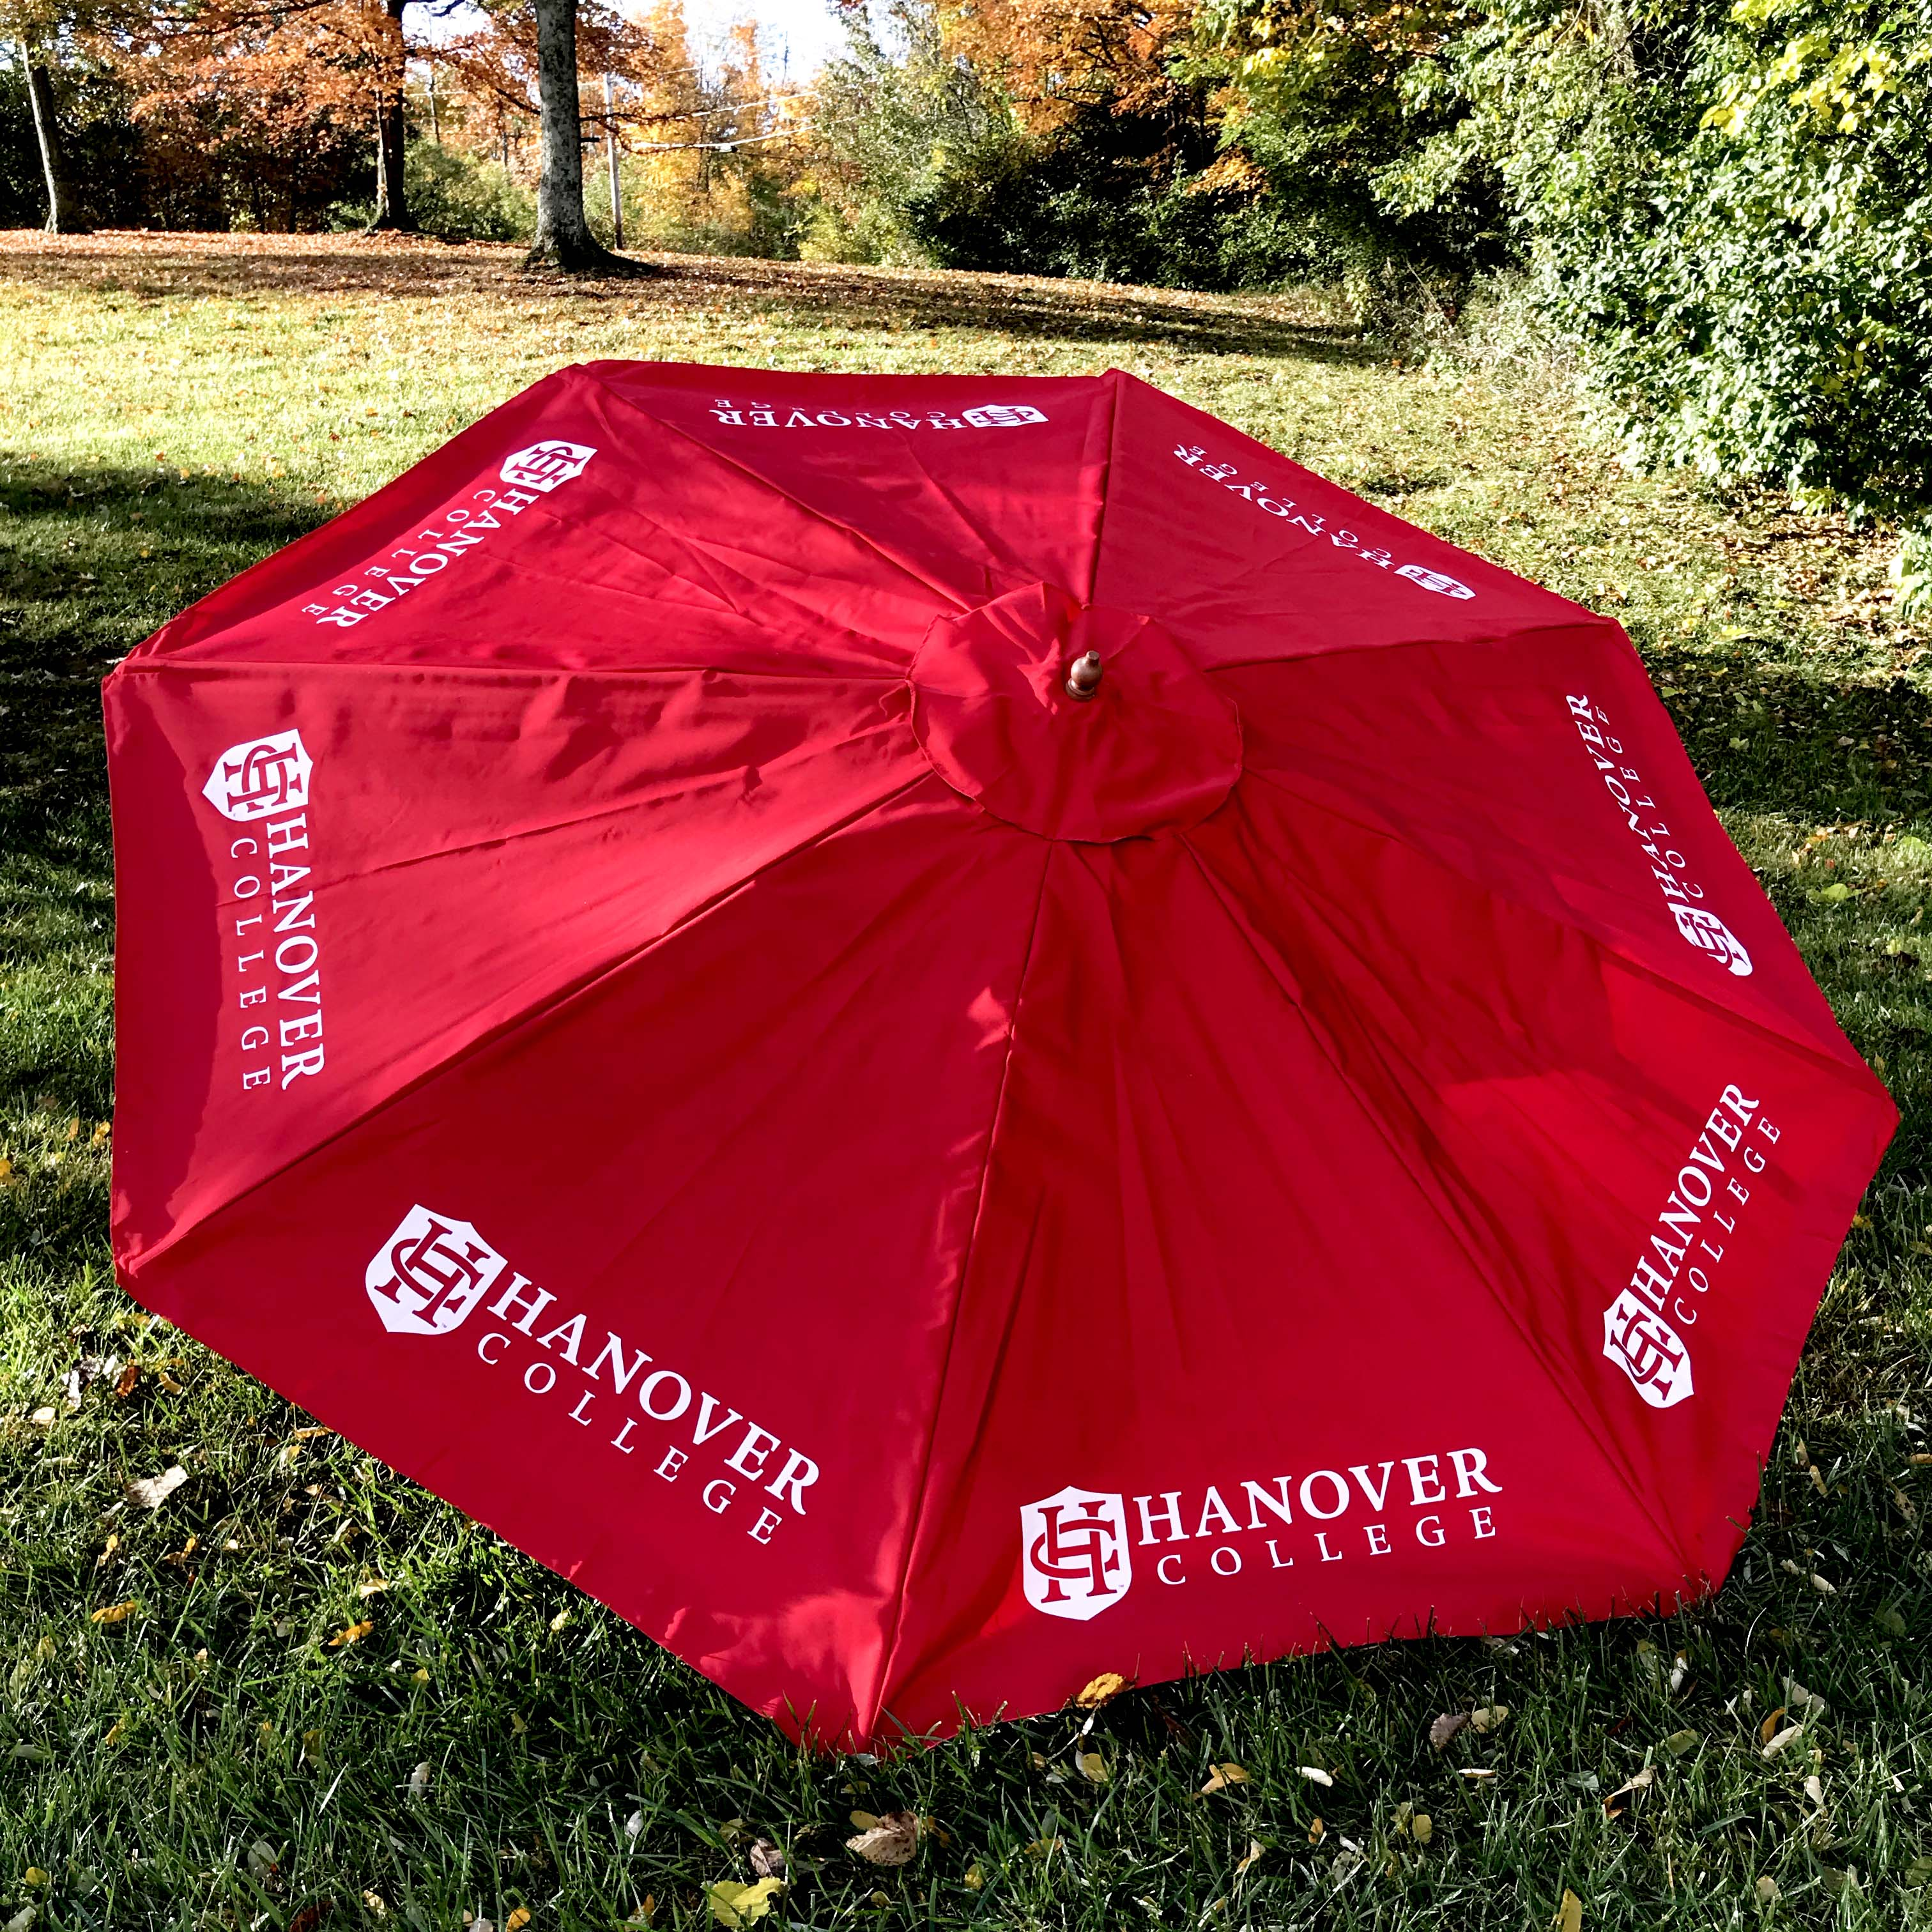 Hanover College patio umbrella.